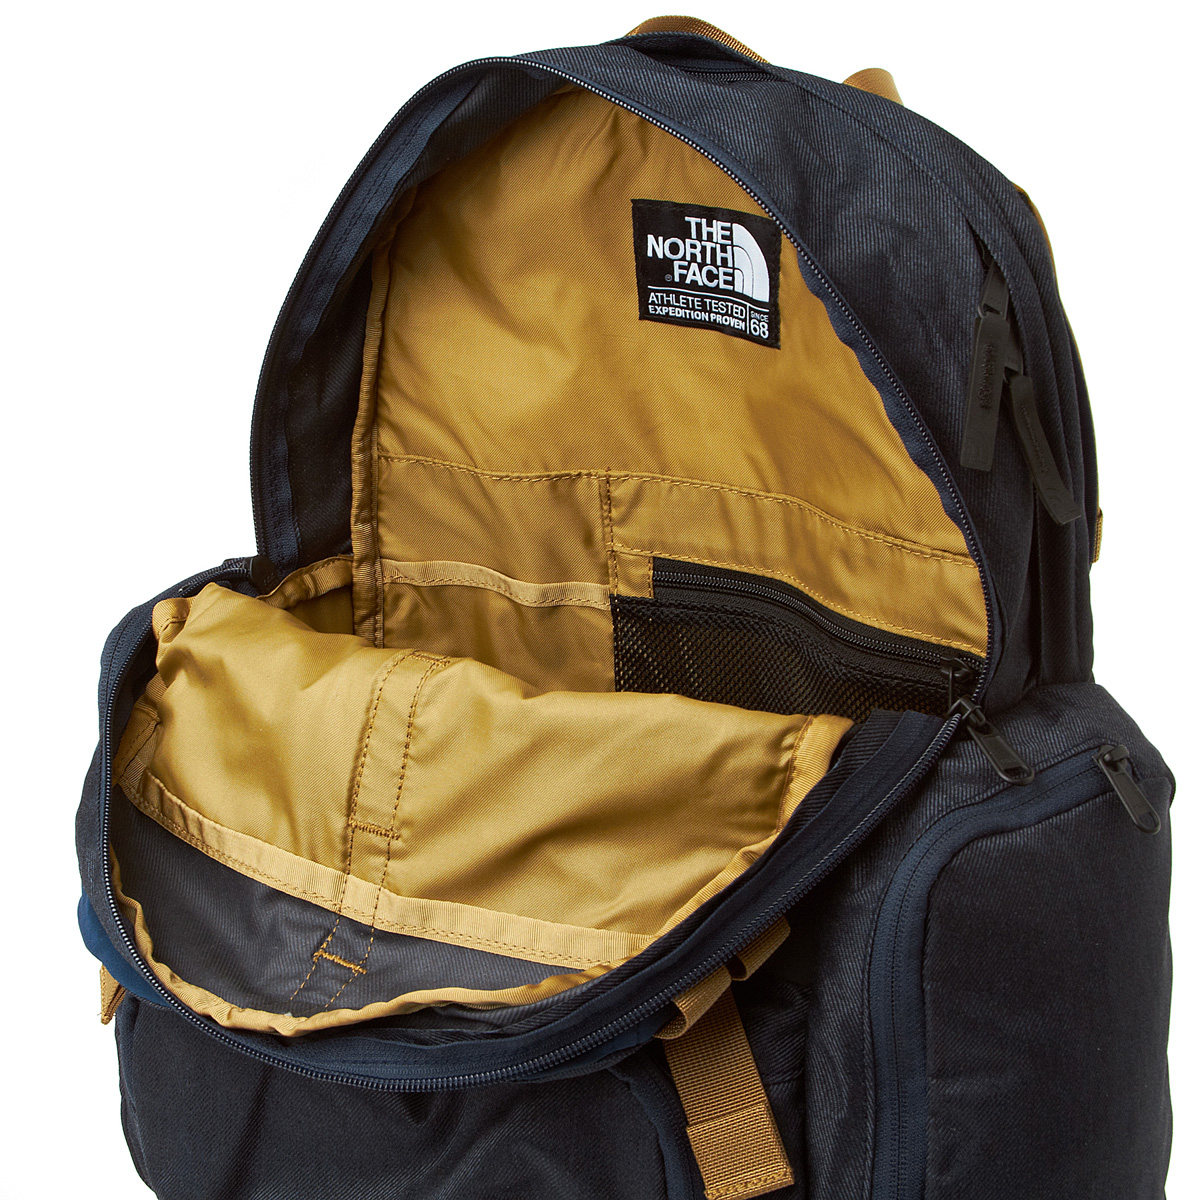 The North Face Rucksack_02